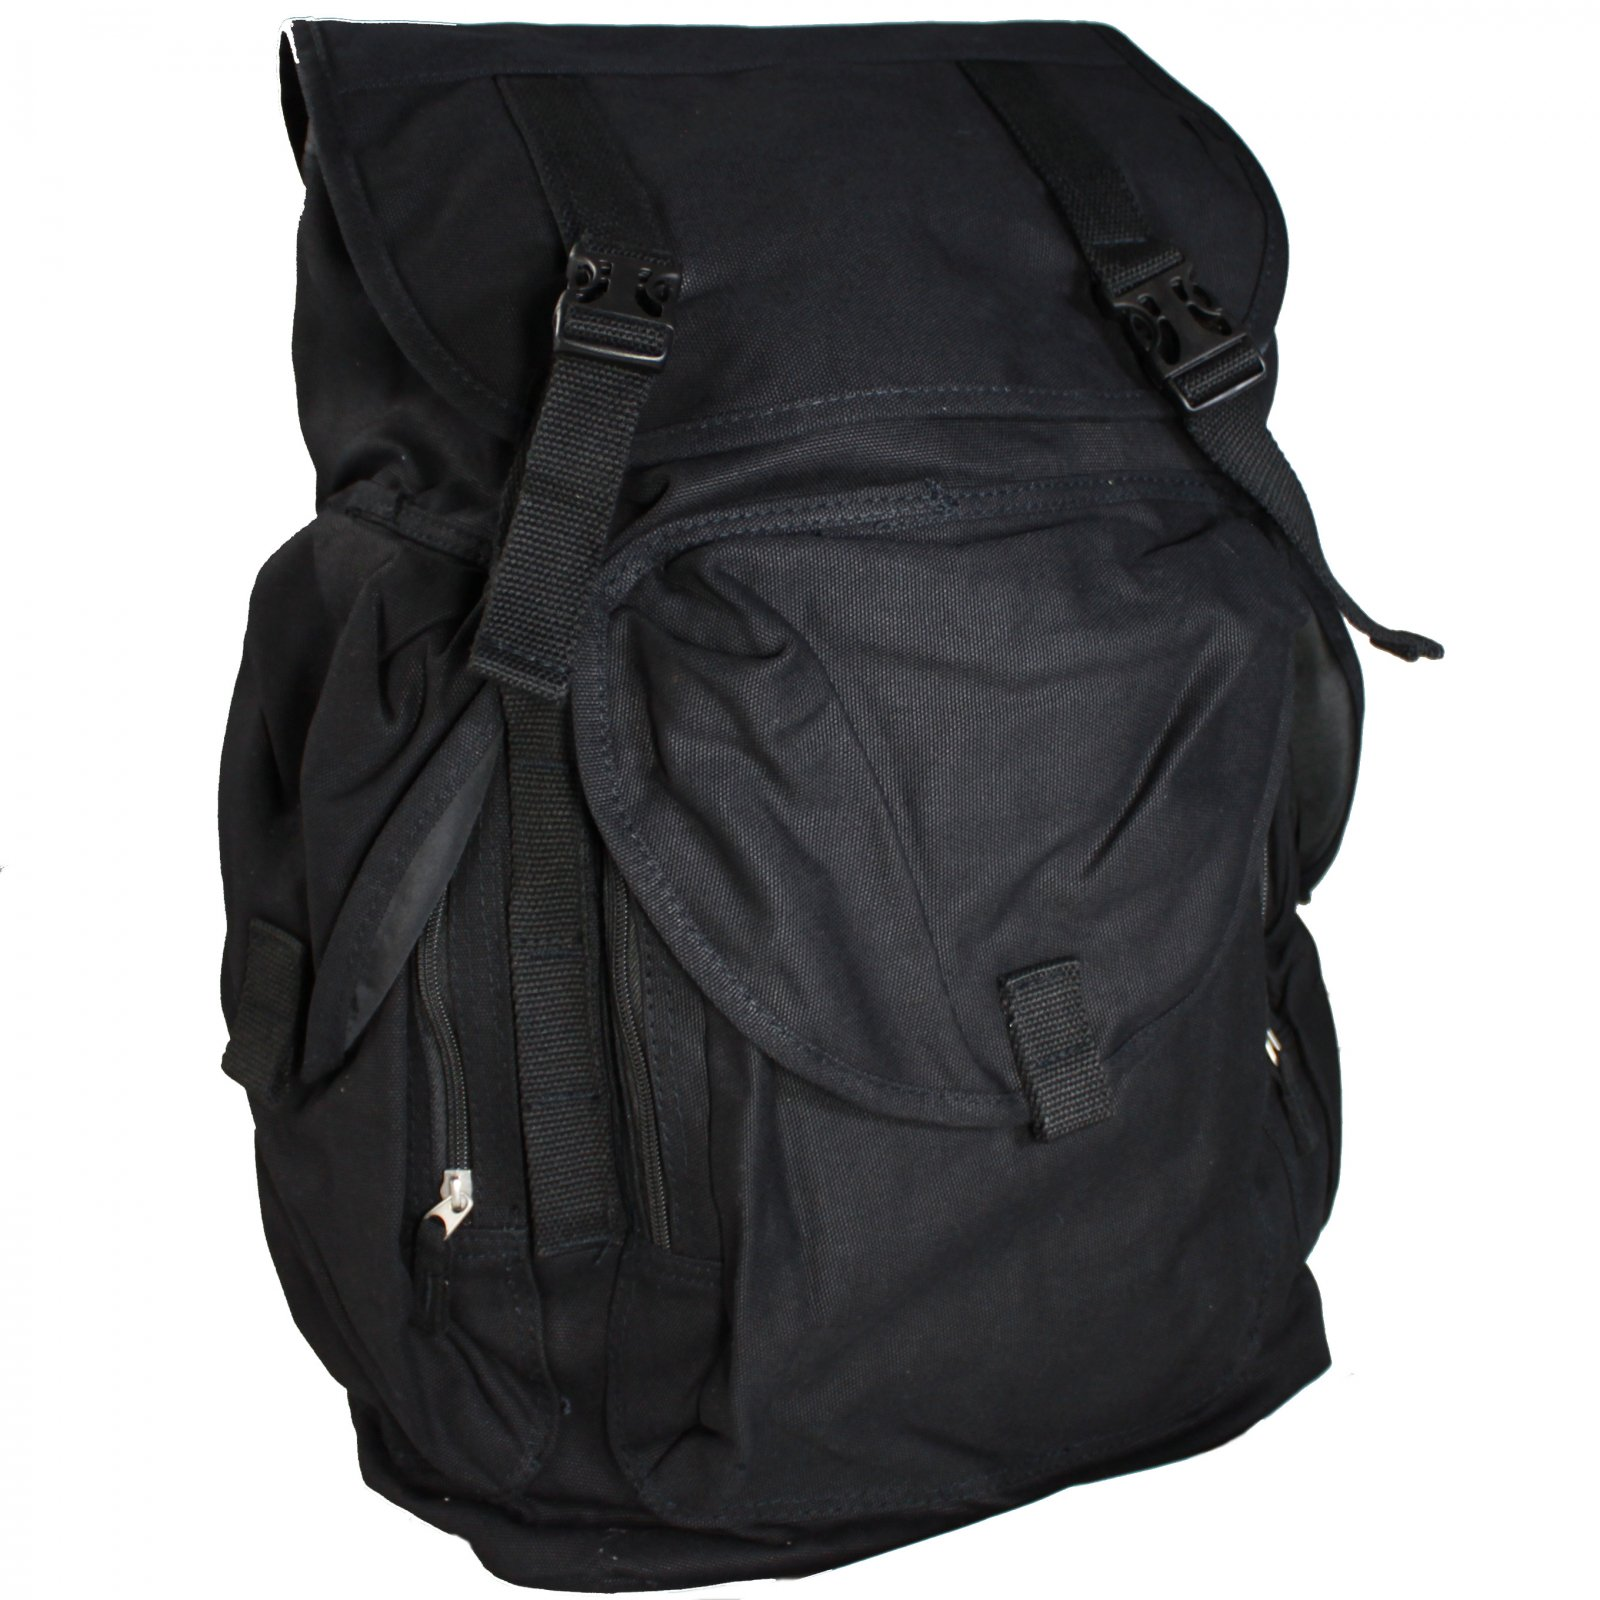 ASR Outdoor Day Hike Backpack 30L High Capacity Canvas Travel Rucksack - Black